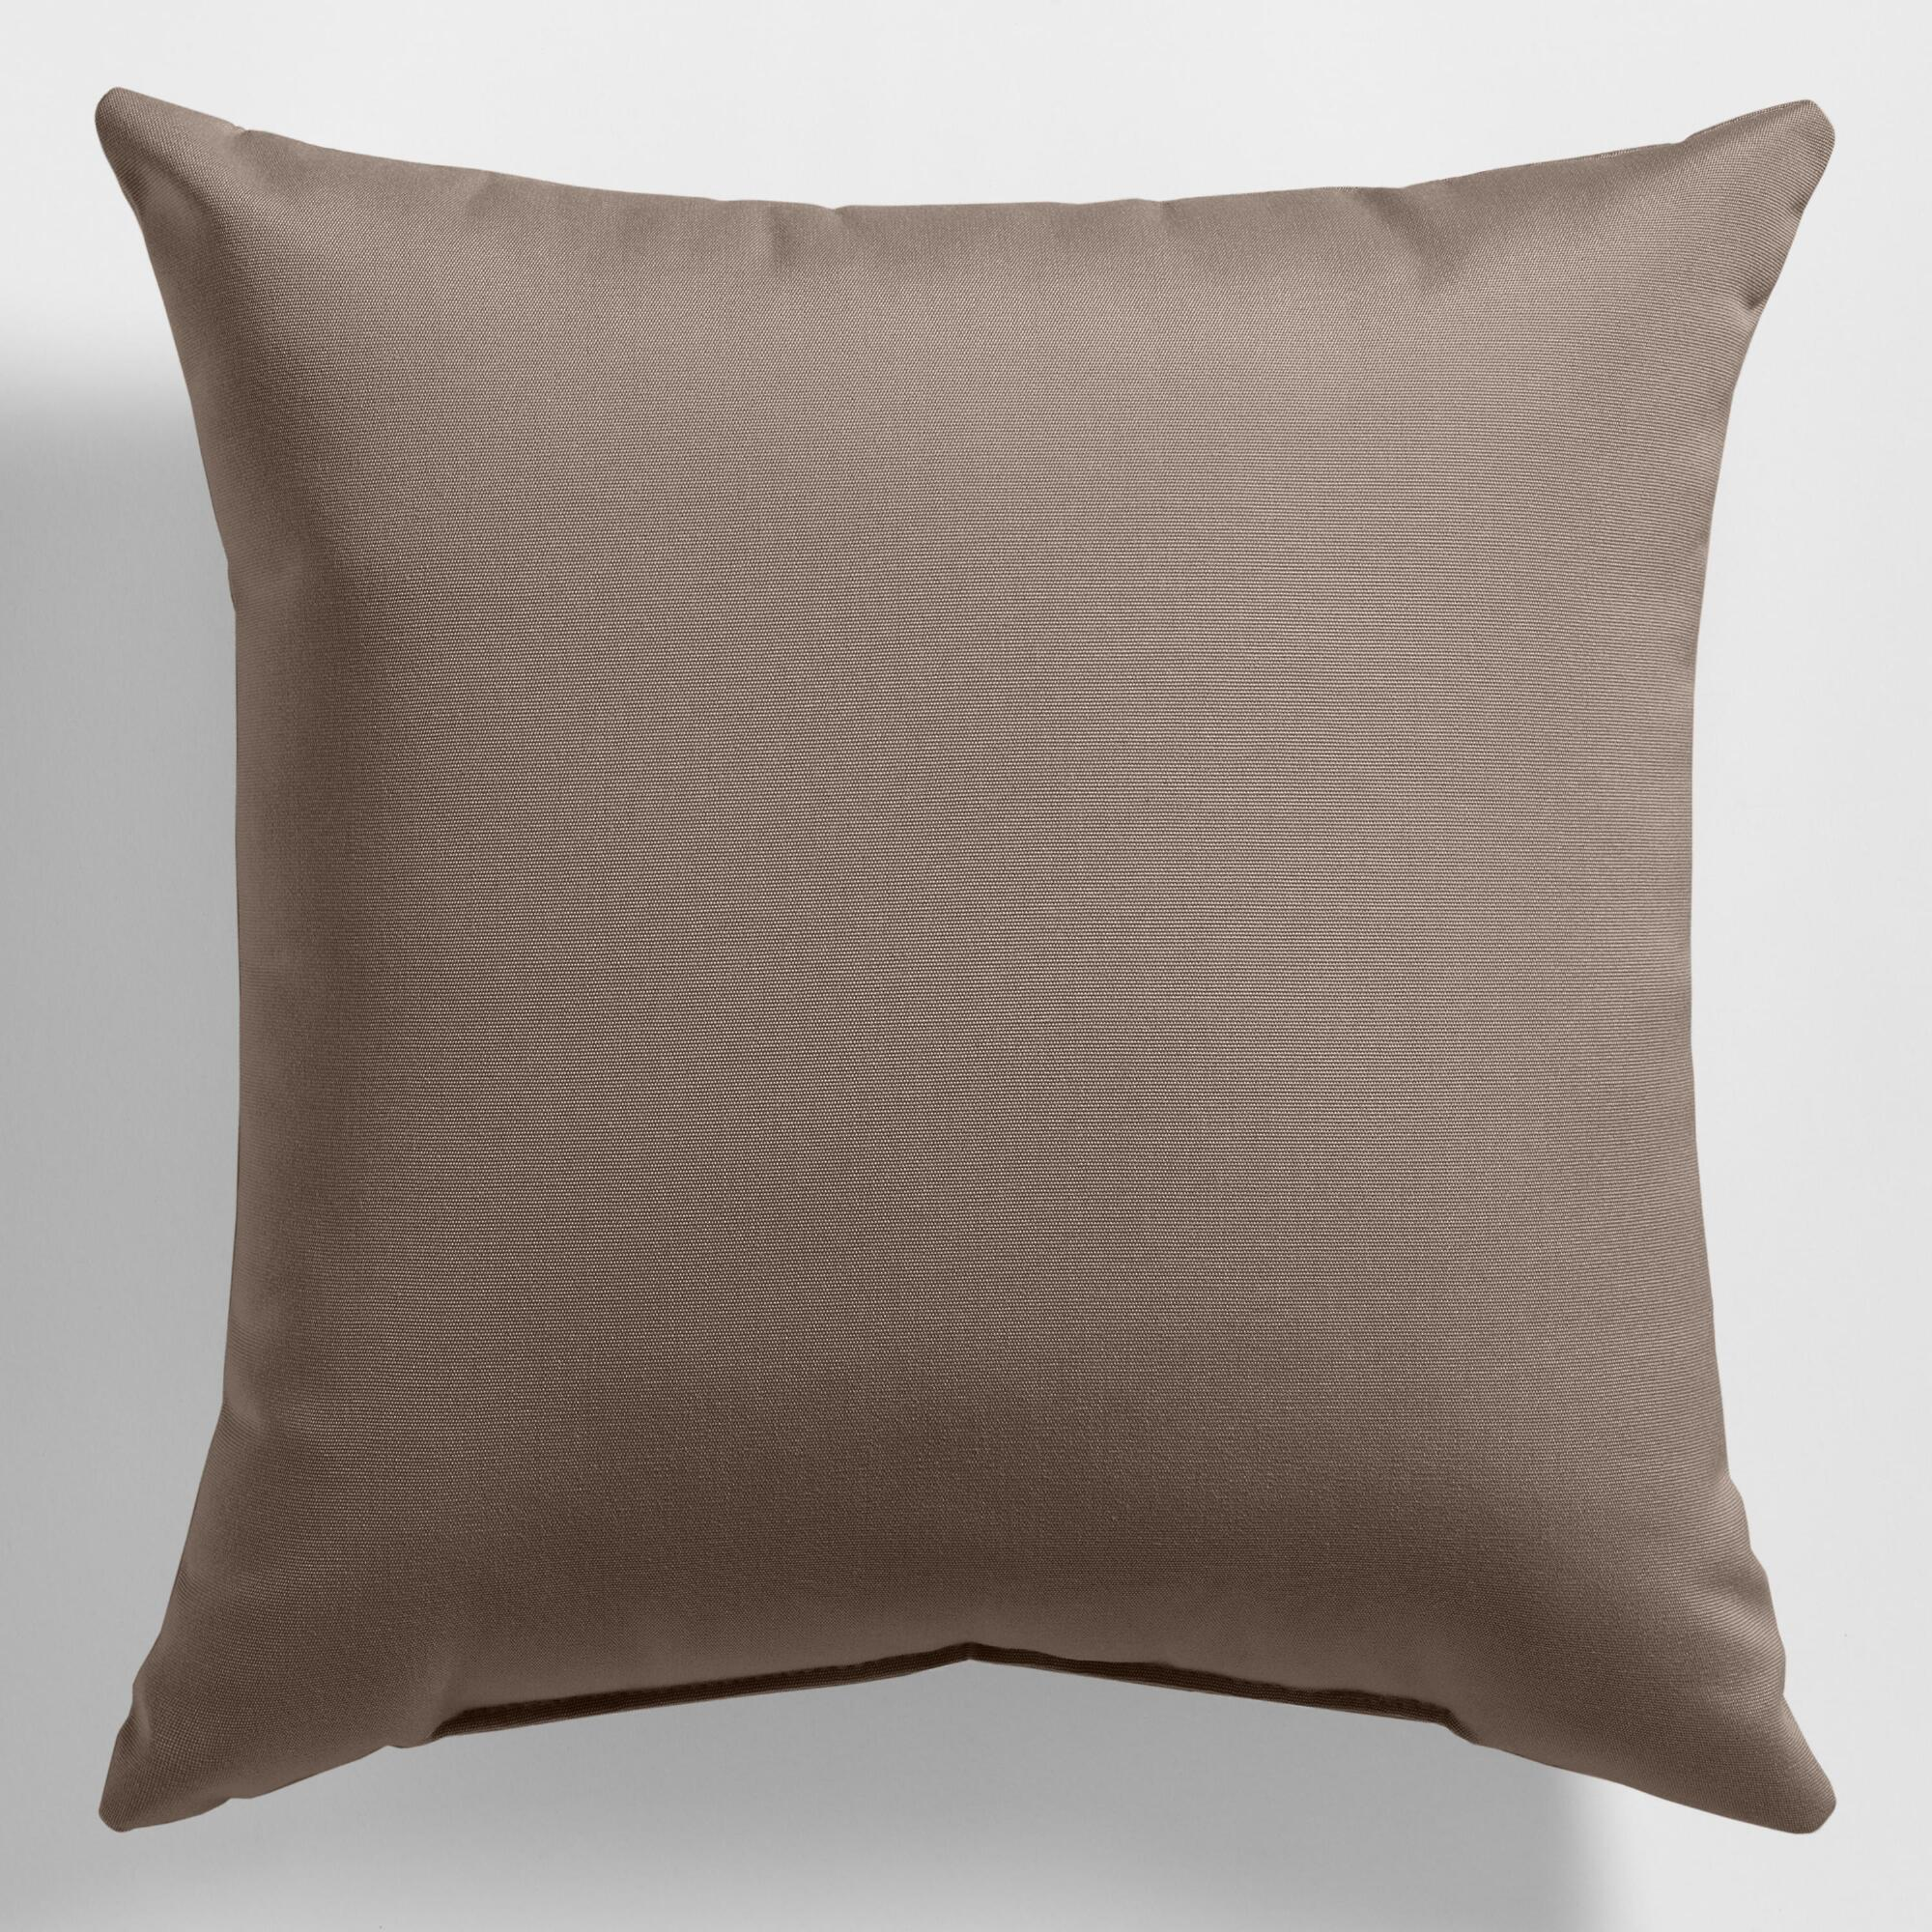 Throw Pillows Taupe : Sunbrella Taupe Canvas Outdoor Throw Pillow World Market